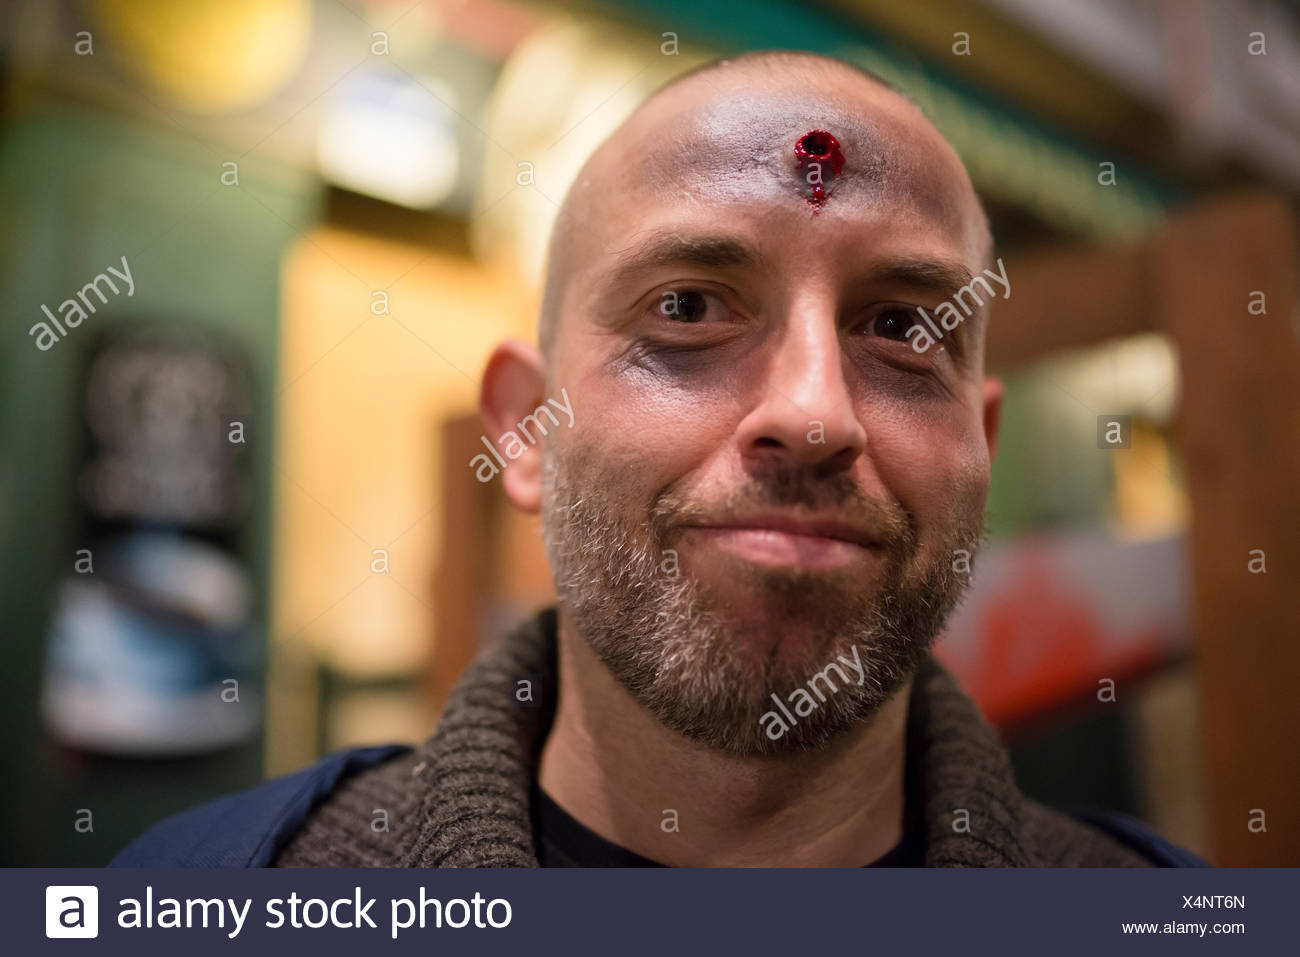 Bearded man with fake shot in his forehead at Halloween - Stock Image